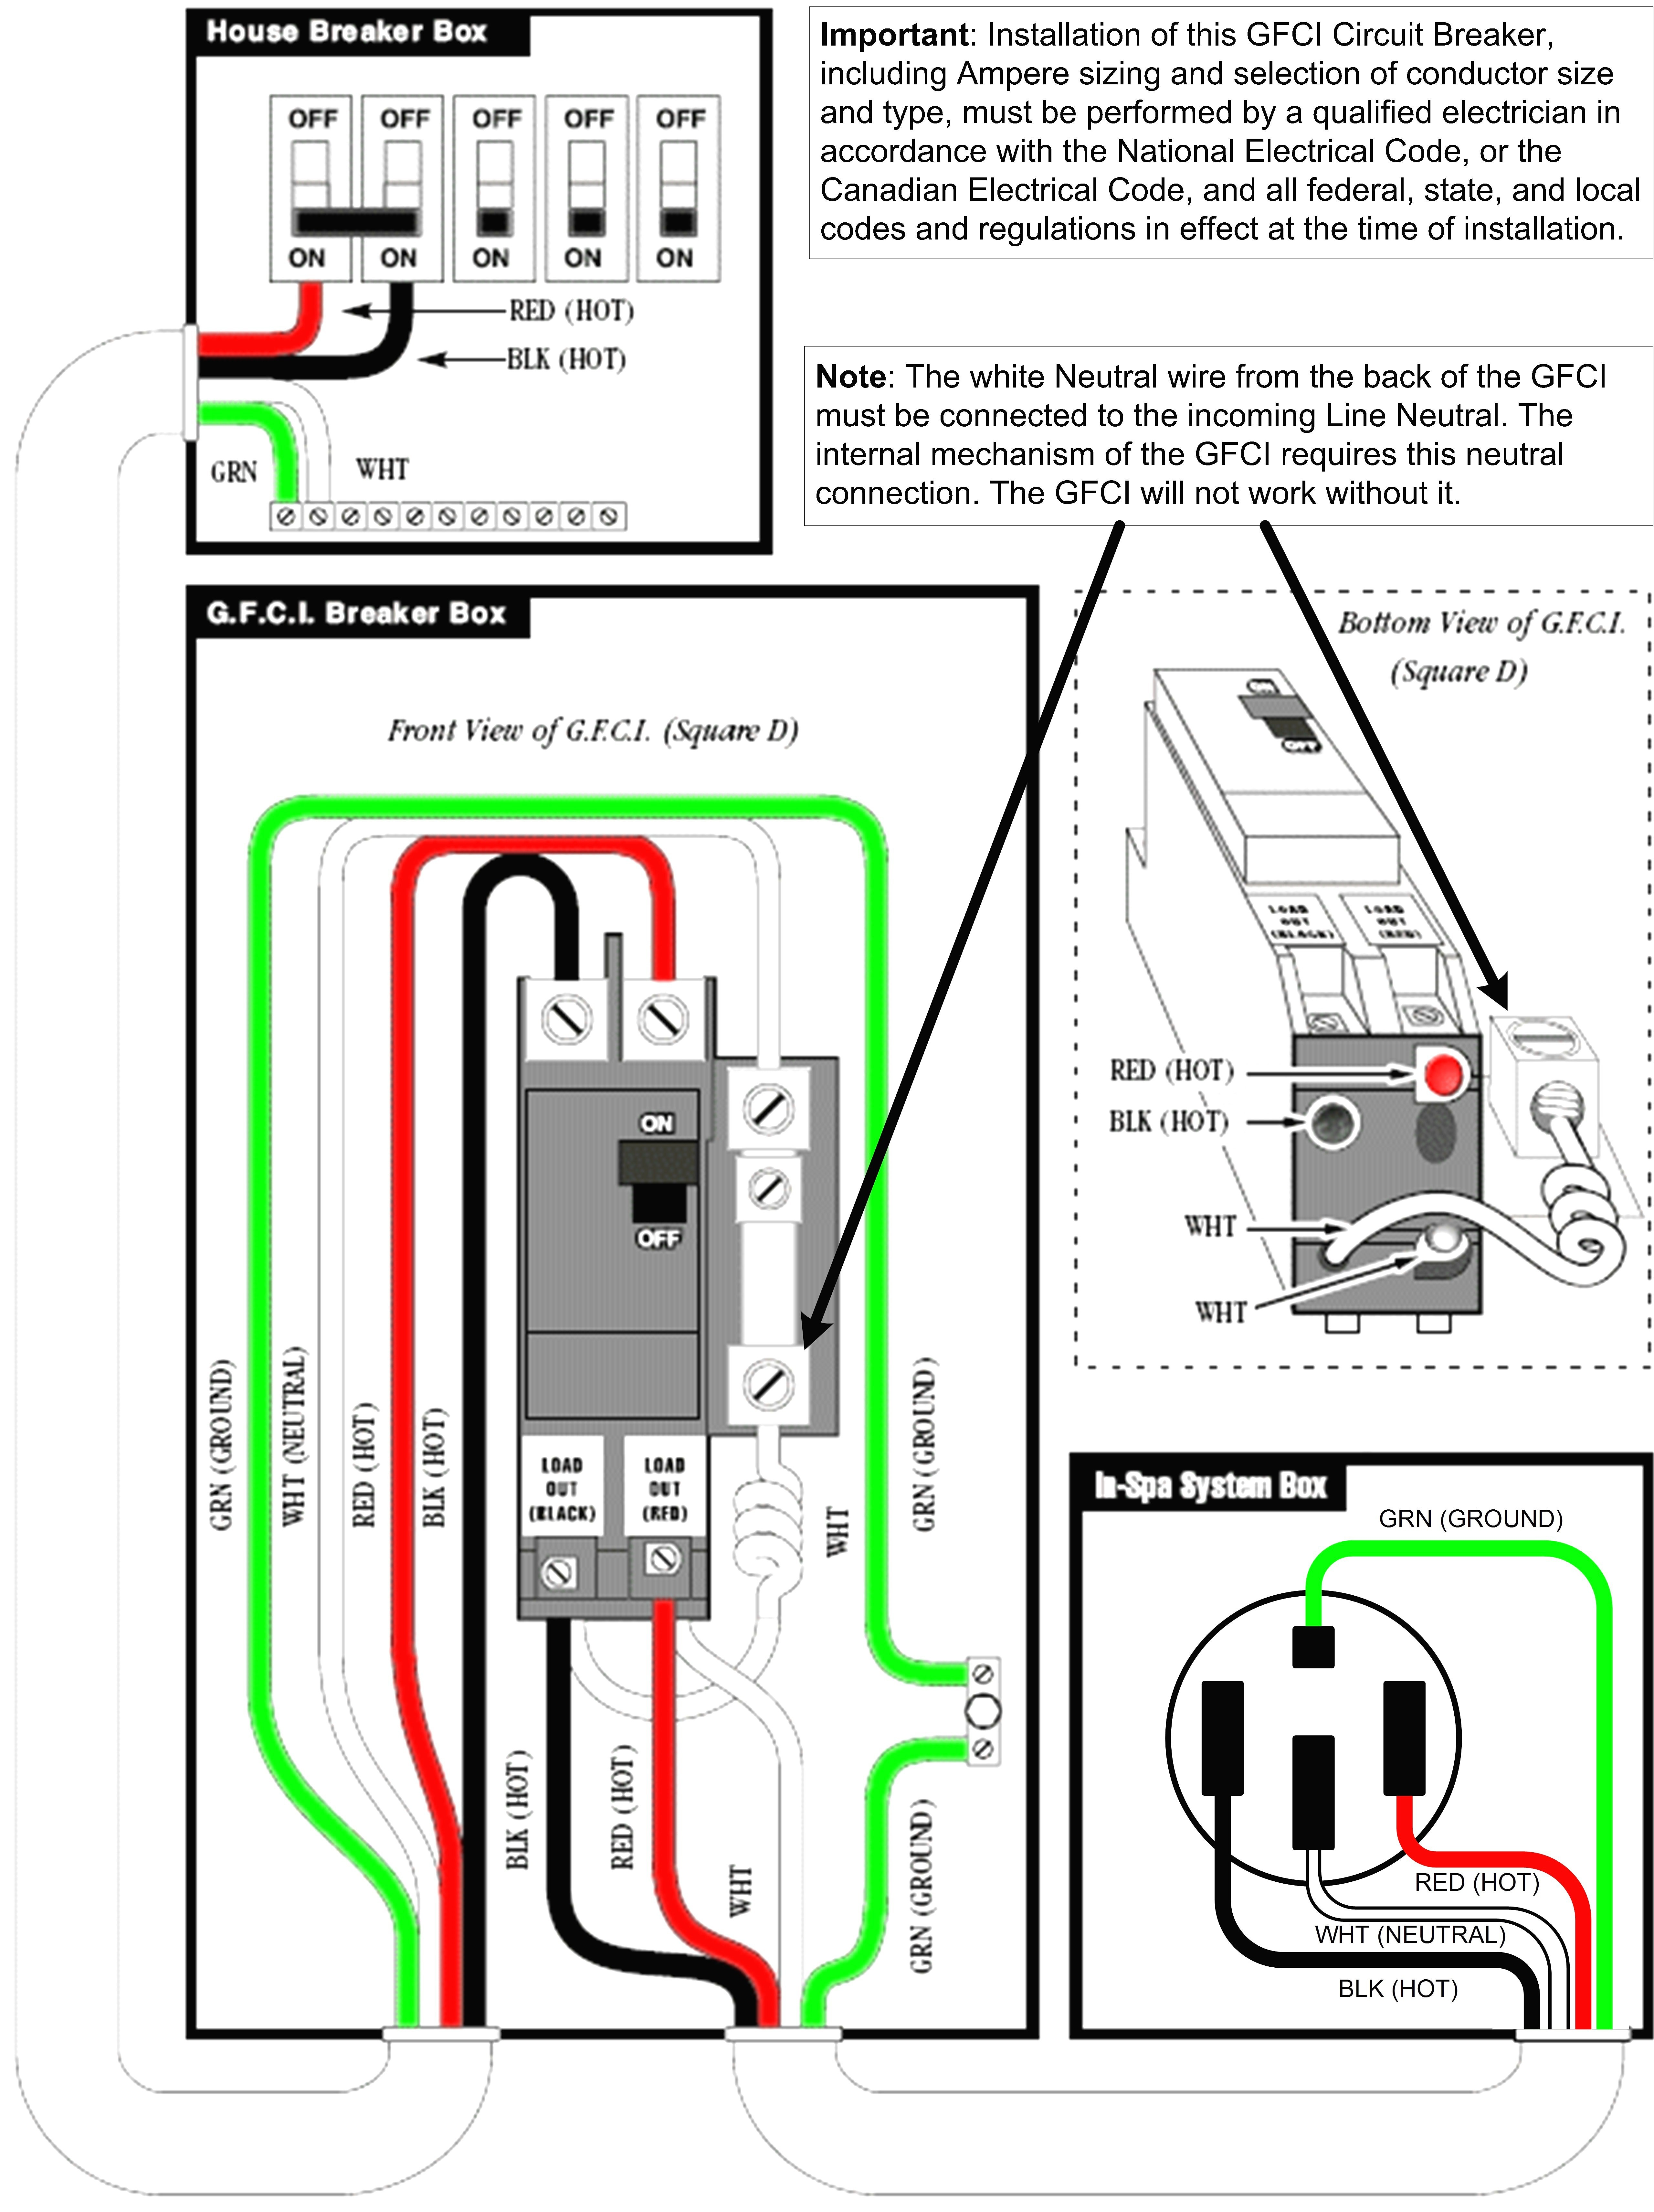 4 Wire 220 Volt Wiring Diagram Inspirational 240 Volt Wiring Diagram Diagram Of 4 Wire 220 Volt Wiring Diagram